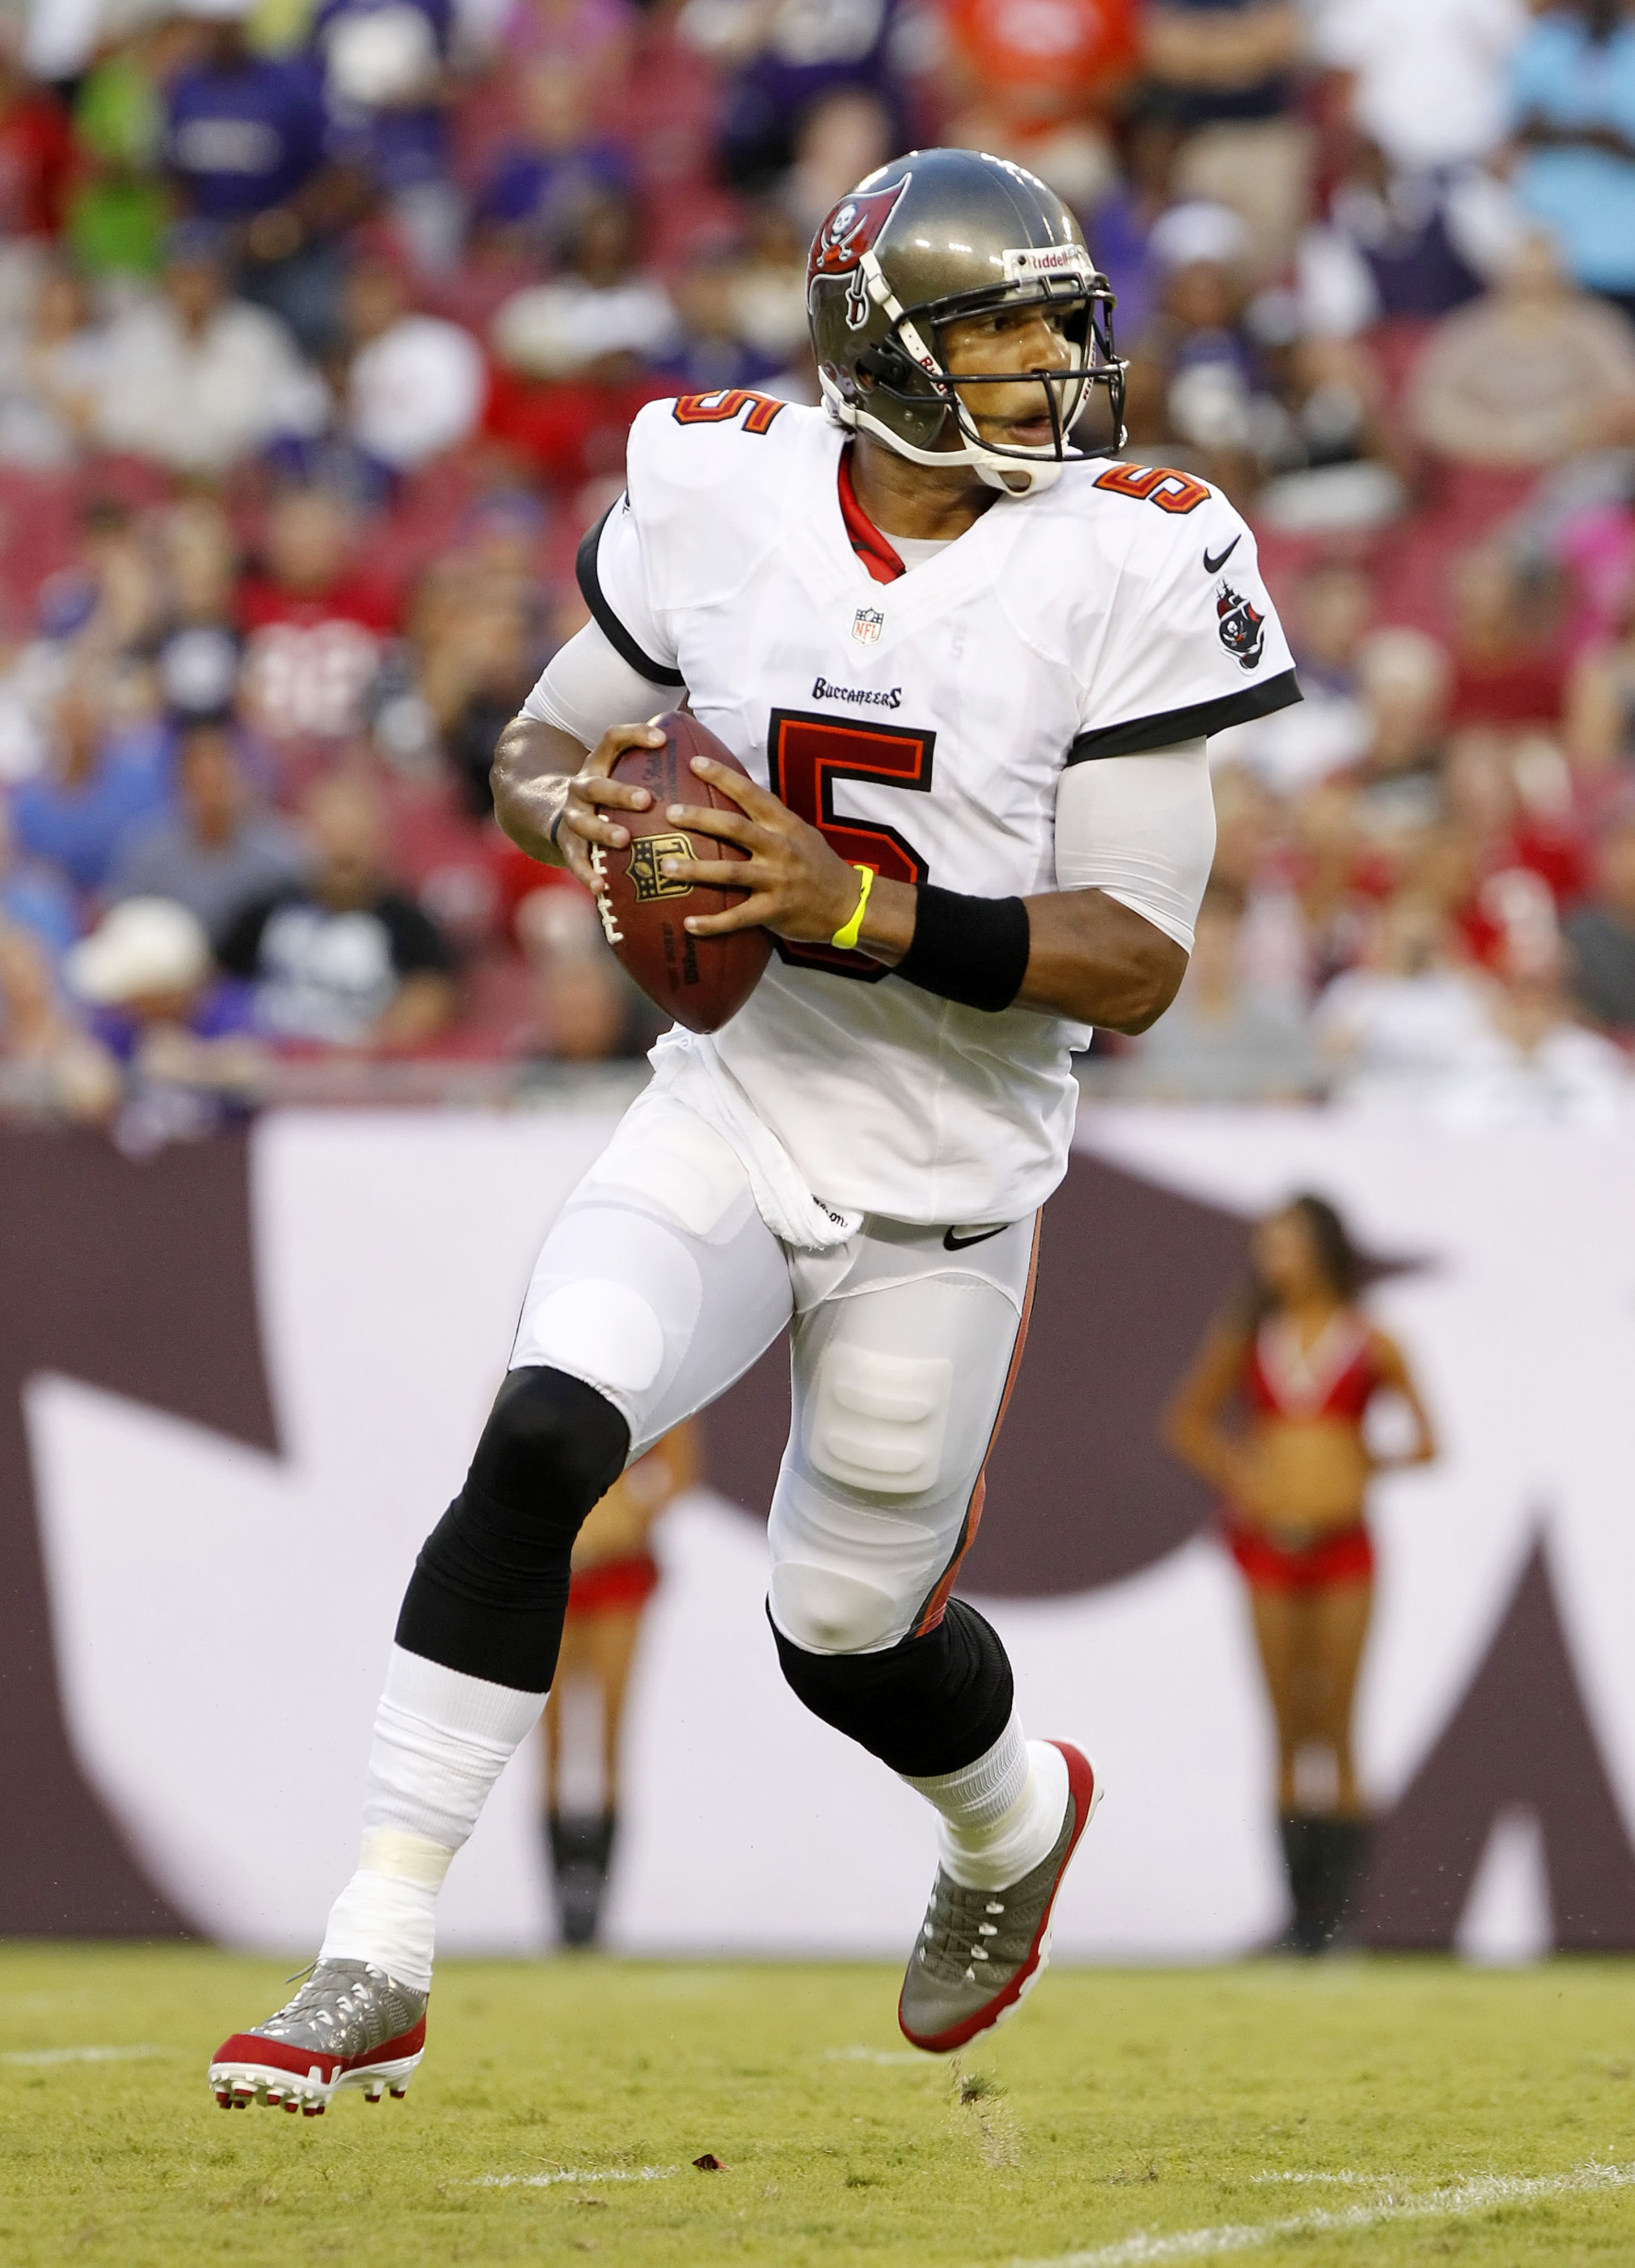 The last time a high school quarterback came in with as many honors as Jesse Ertz, it was Josh Freeman. Just saying.